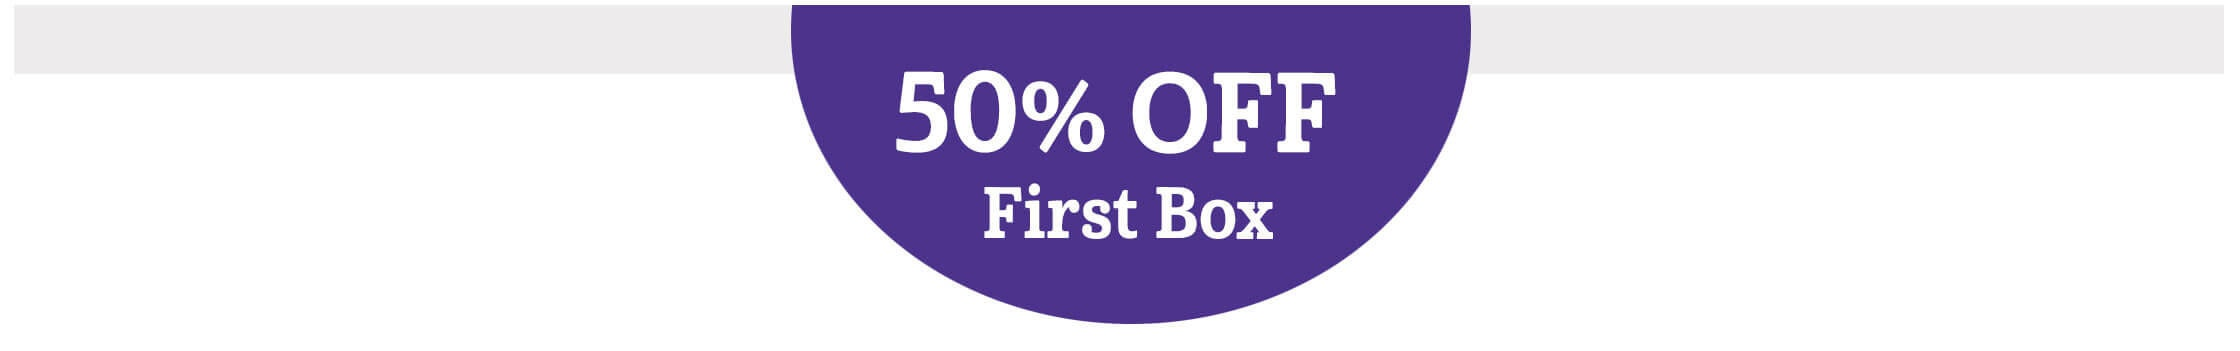 50% OFF First Box! Choose your grade to get started.